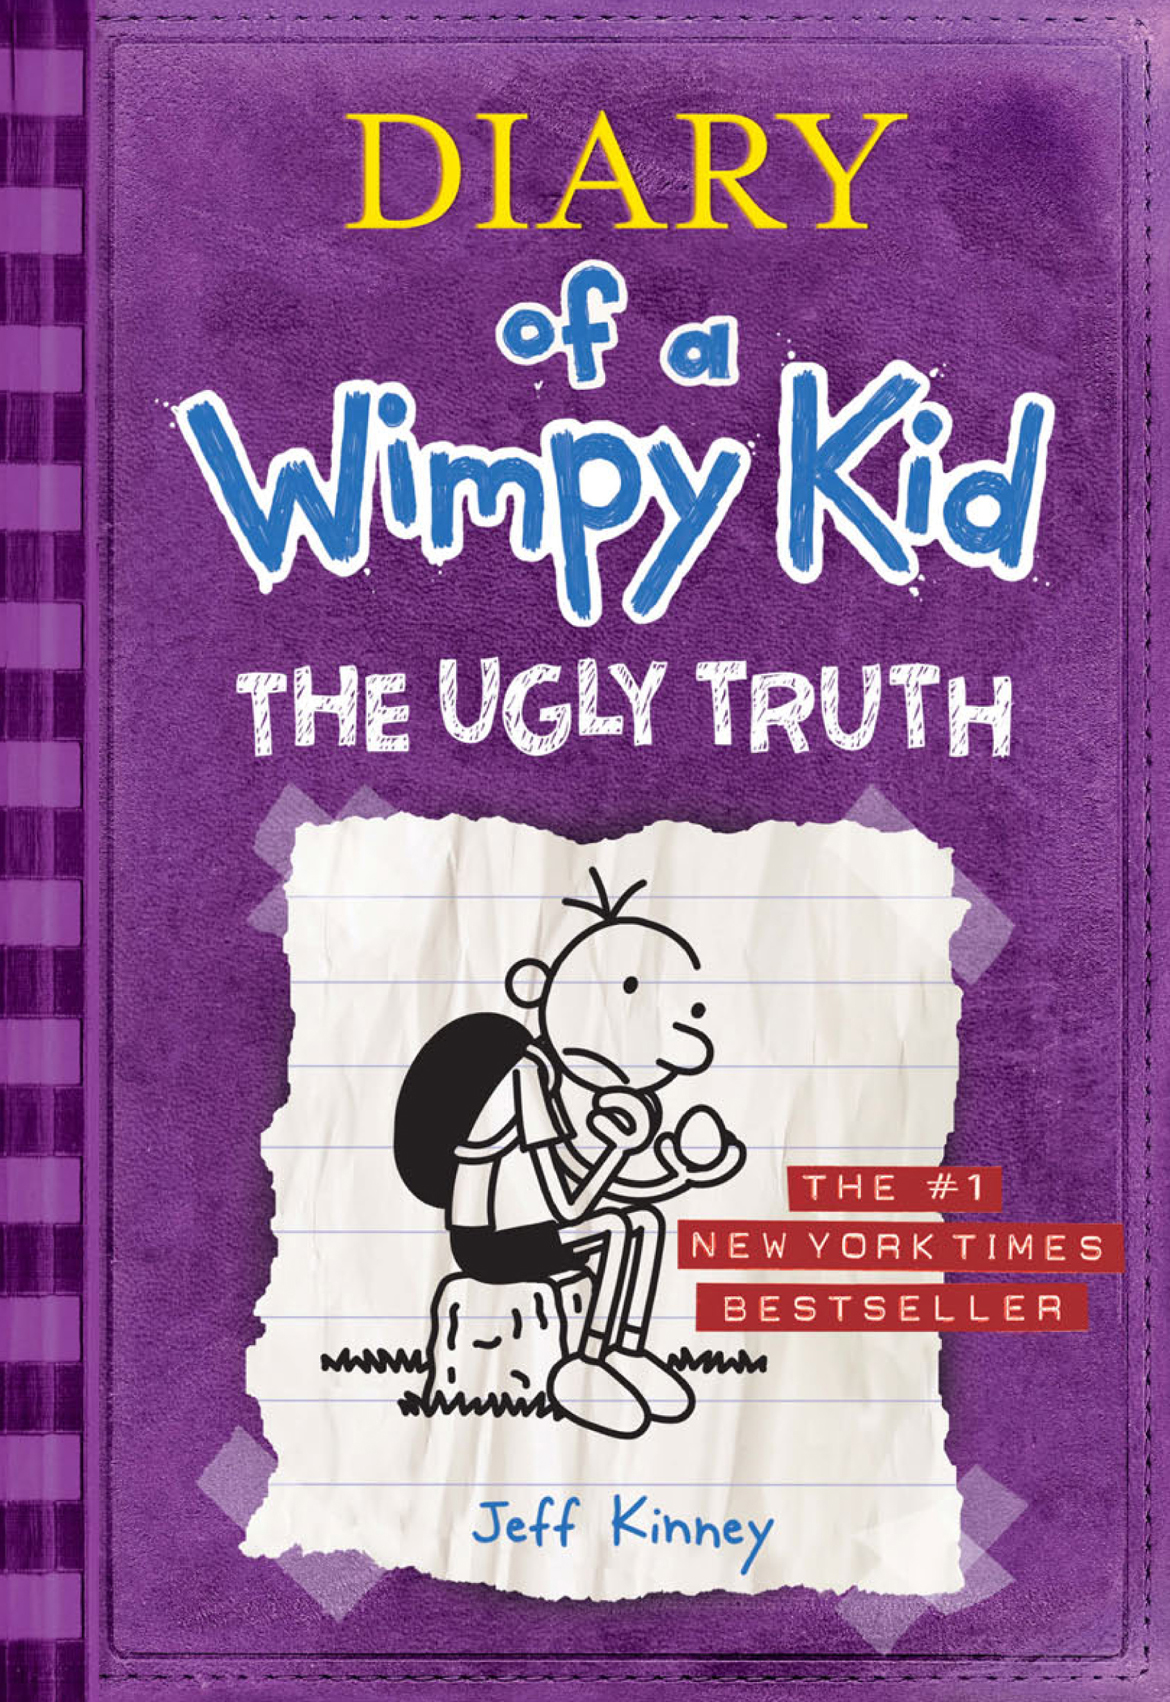 Cover Image of The Ugly Truth (Diary of a Wimpy Kid #5)